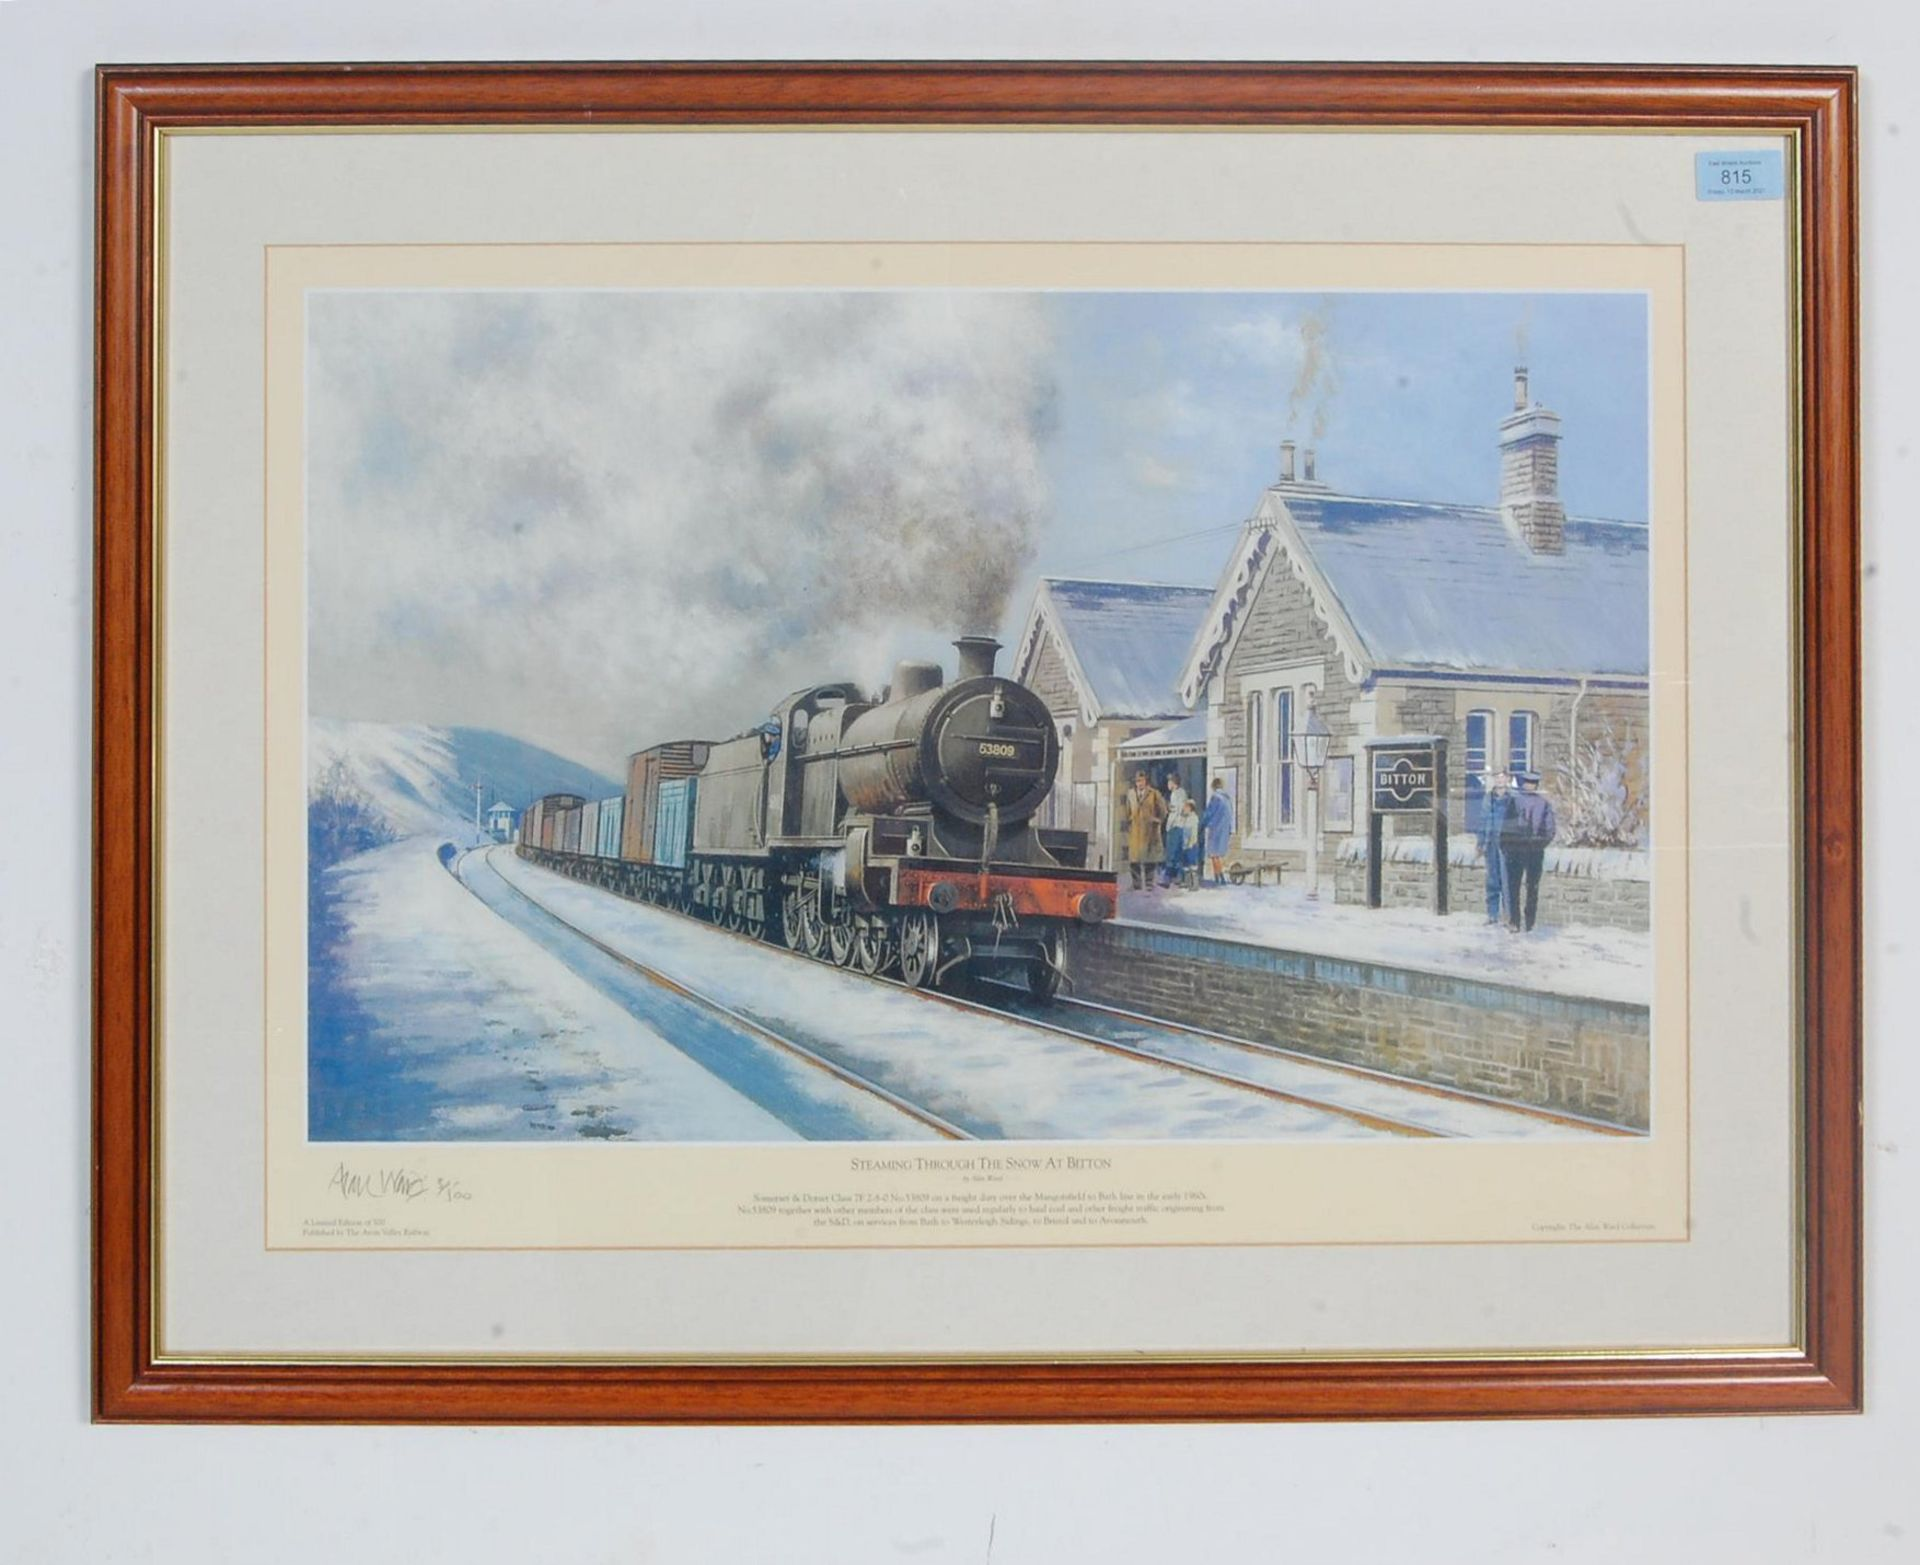 RAILWAY INTEREST - STEAMING THROUGH THE SNOW AT BITTON - LTD ED PRINT